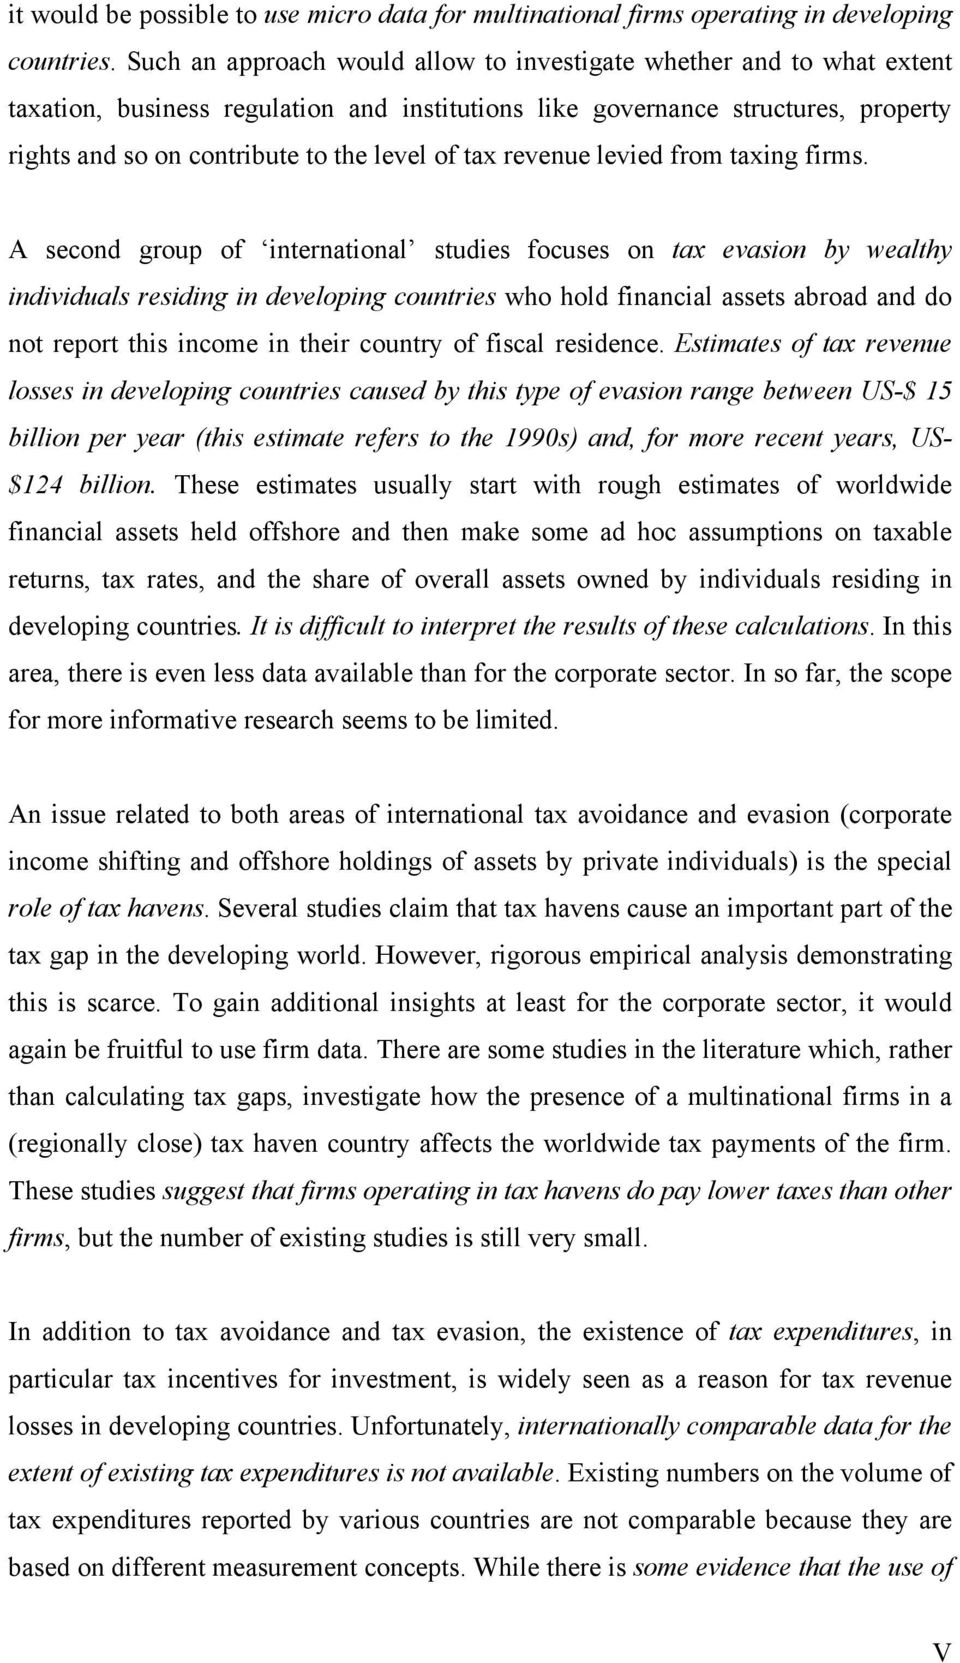 Tax Evasion Tax Avoidance And Tax Expenditures In Developing Countries A Review Of The Literature Pdf Free Download